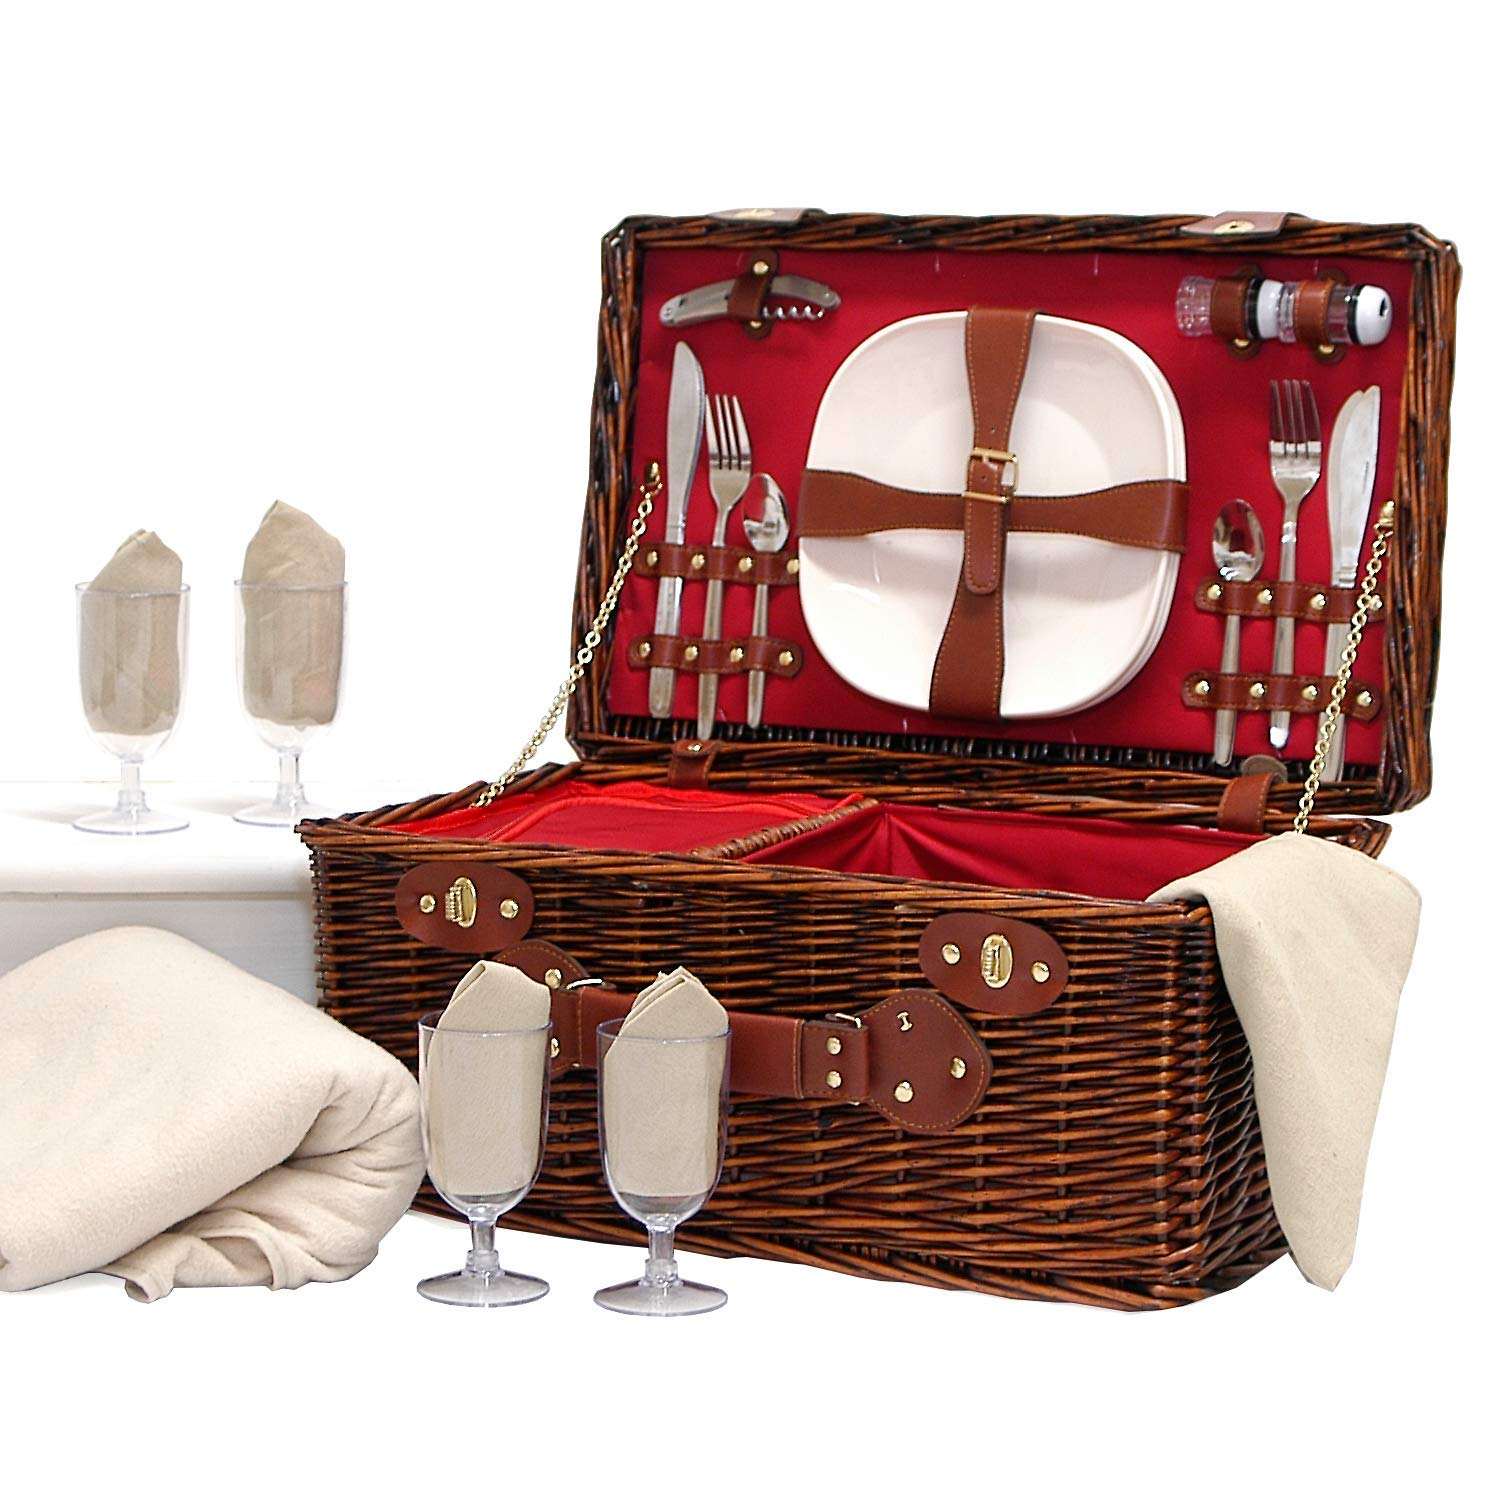 Redgrave 4 Person Wicker Picnic Basket Set & Cream Fleece Picnic Blanket - Gift Ideas for Fathers Day, Mom, him, her, Birthday, Wedding, Anniversary, Corporate, Business, Thank You, Family, Dad